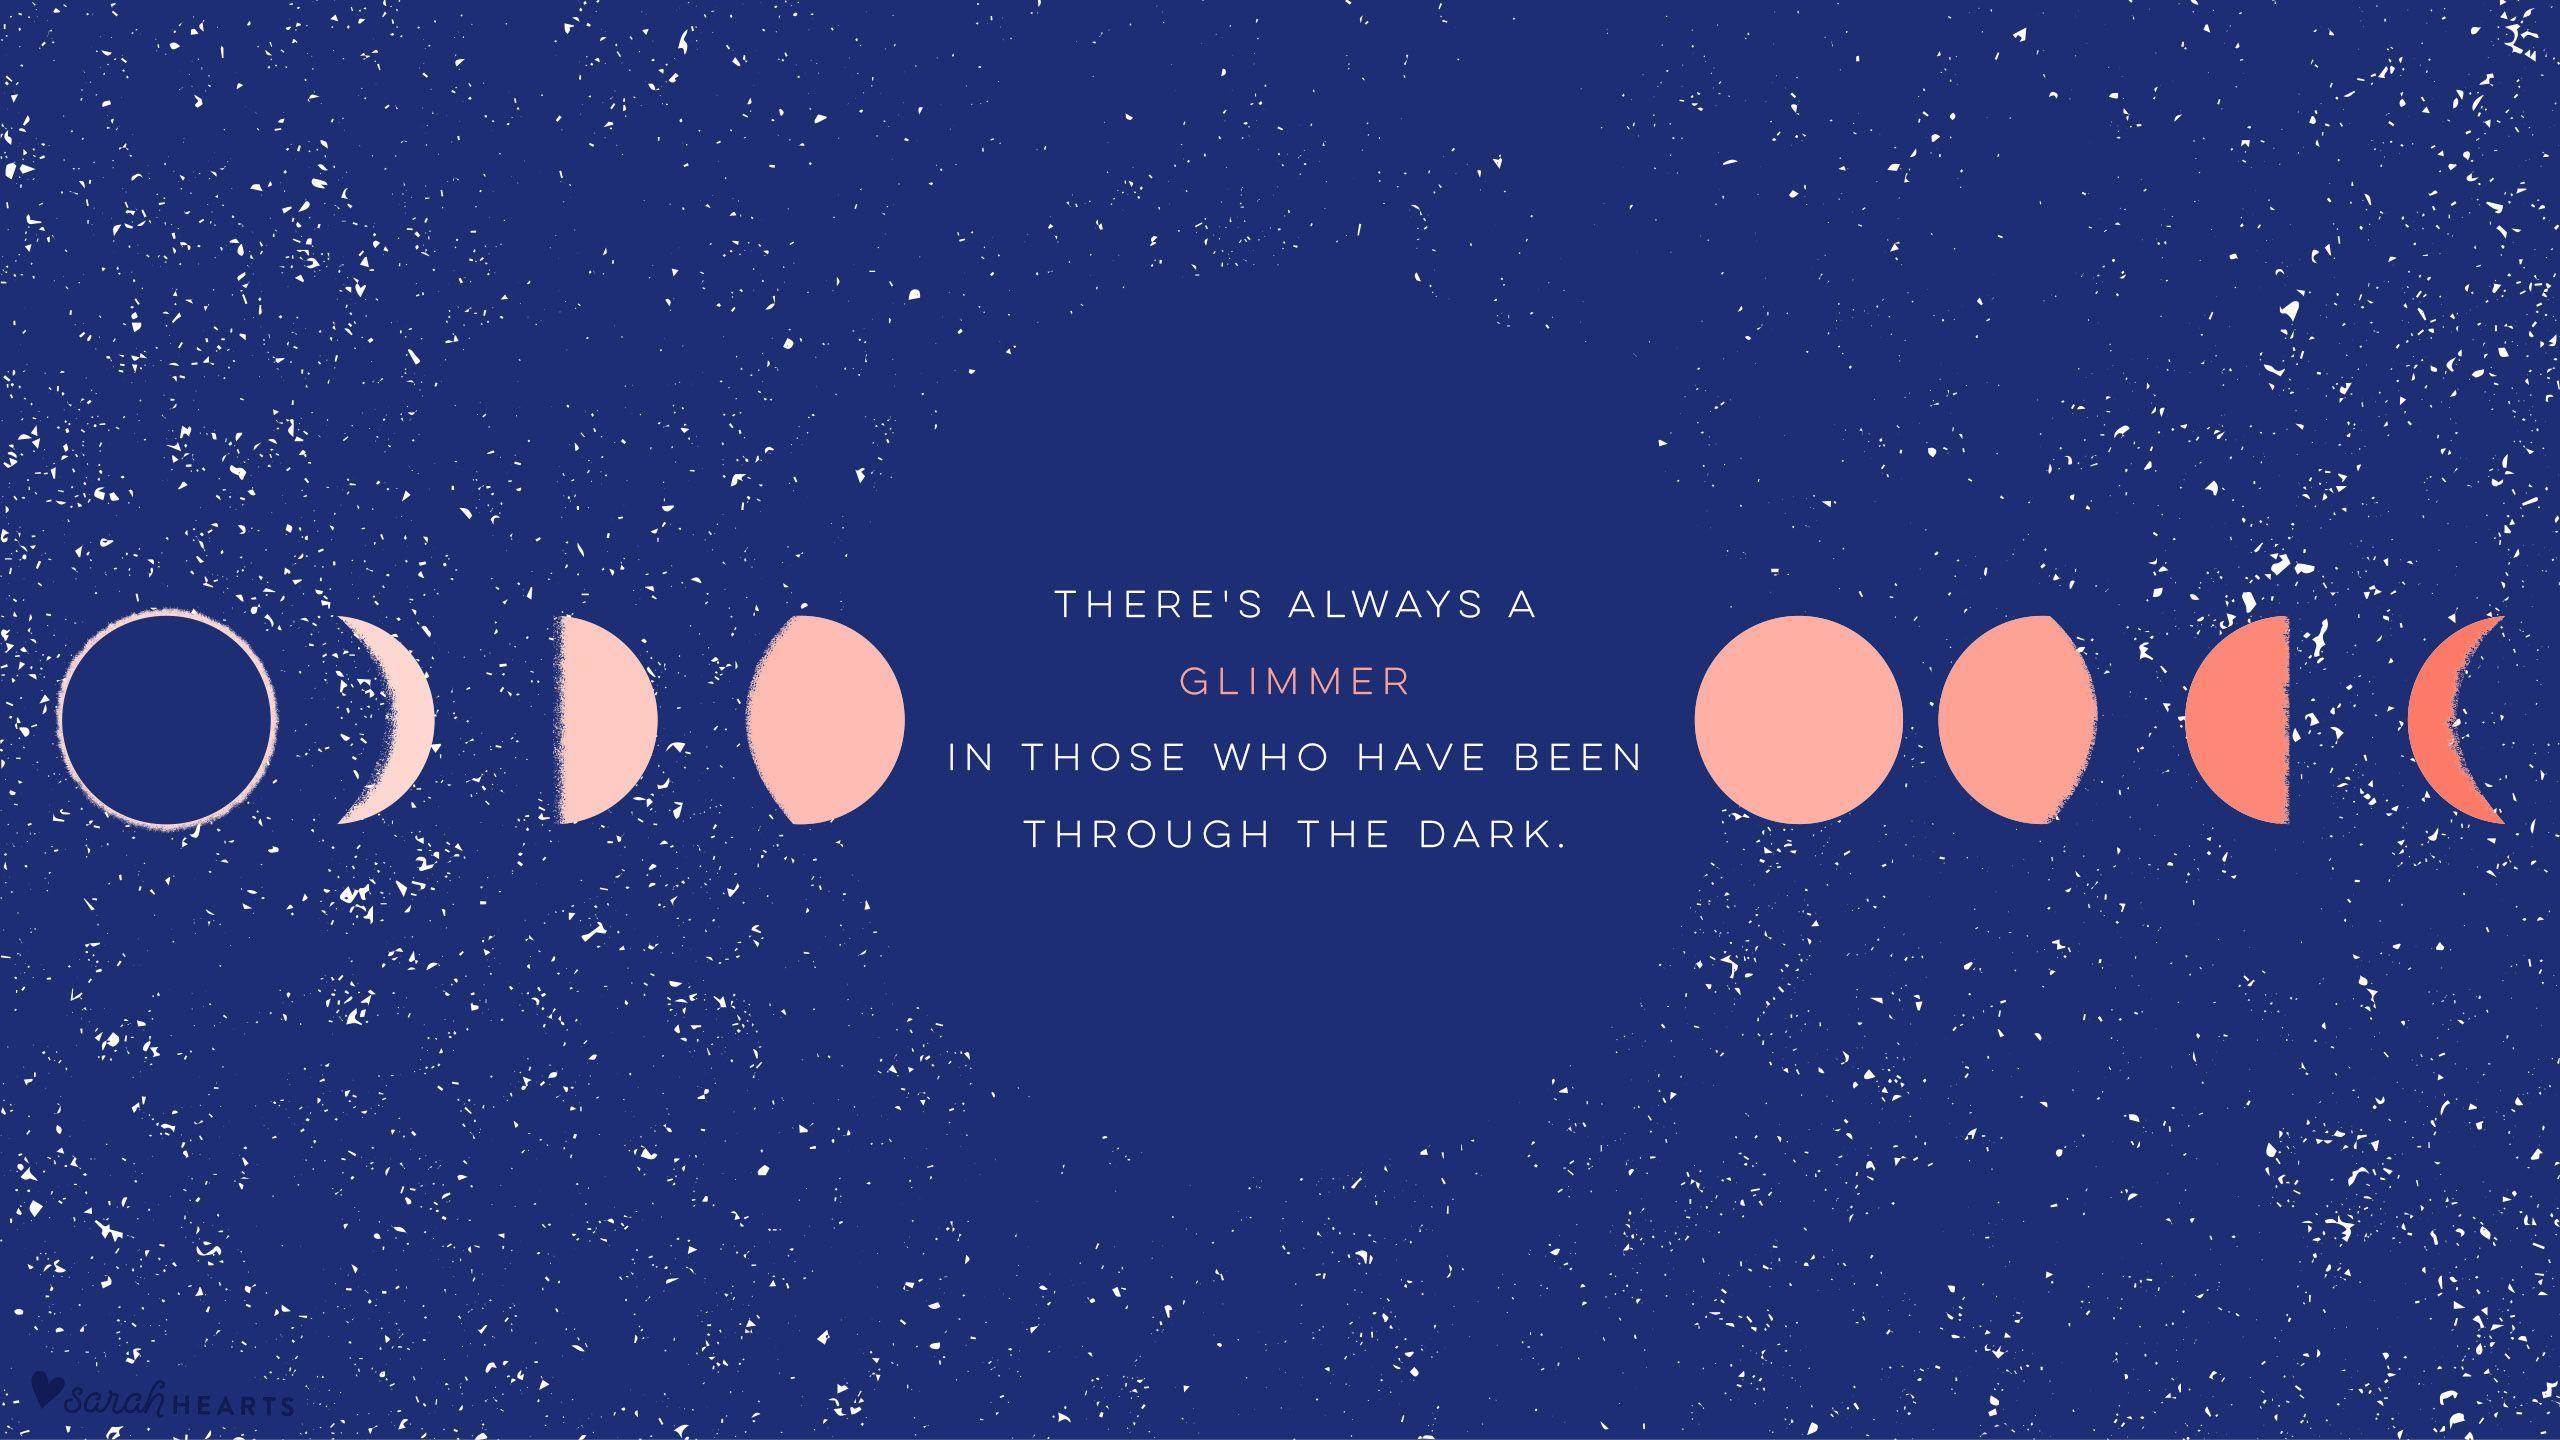 This Is A Laptop Background With A Space Theme And A Quote